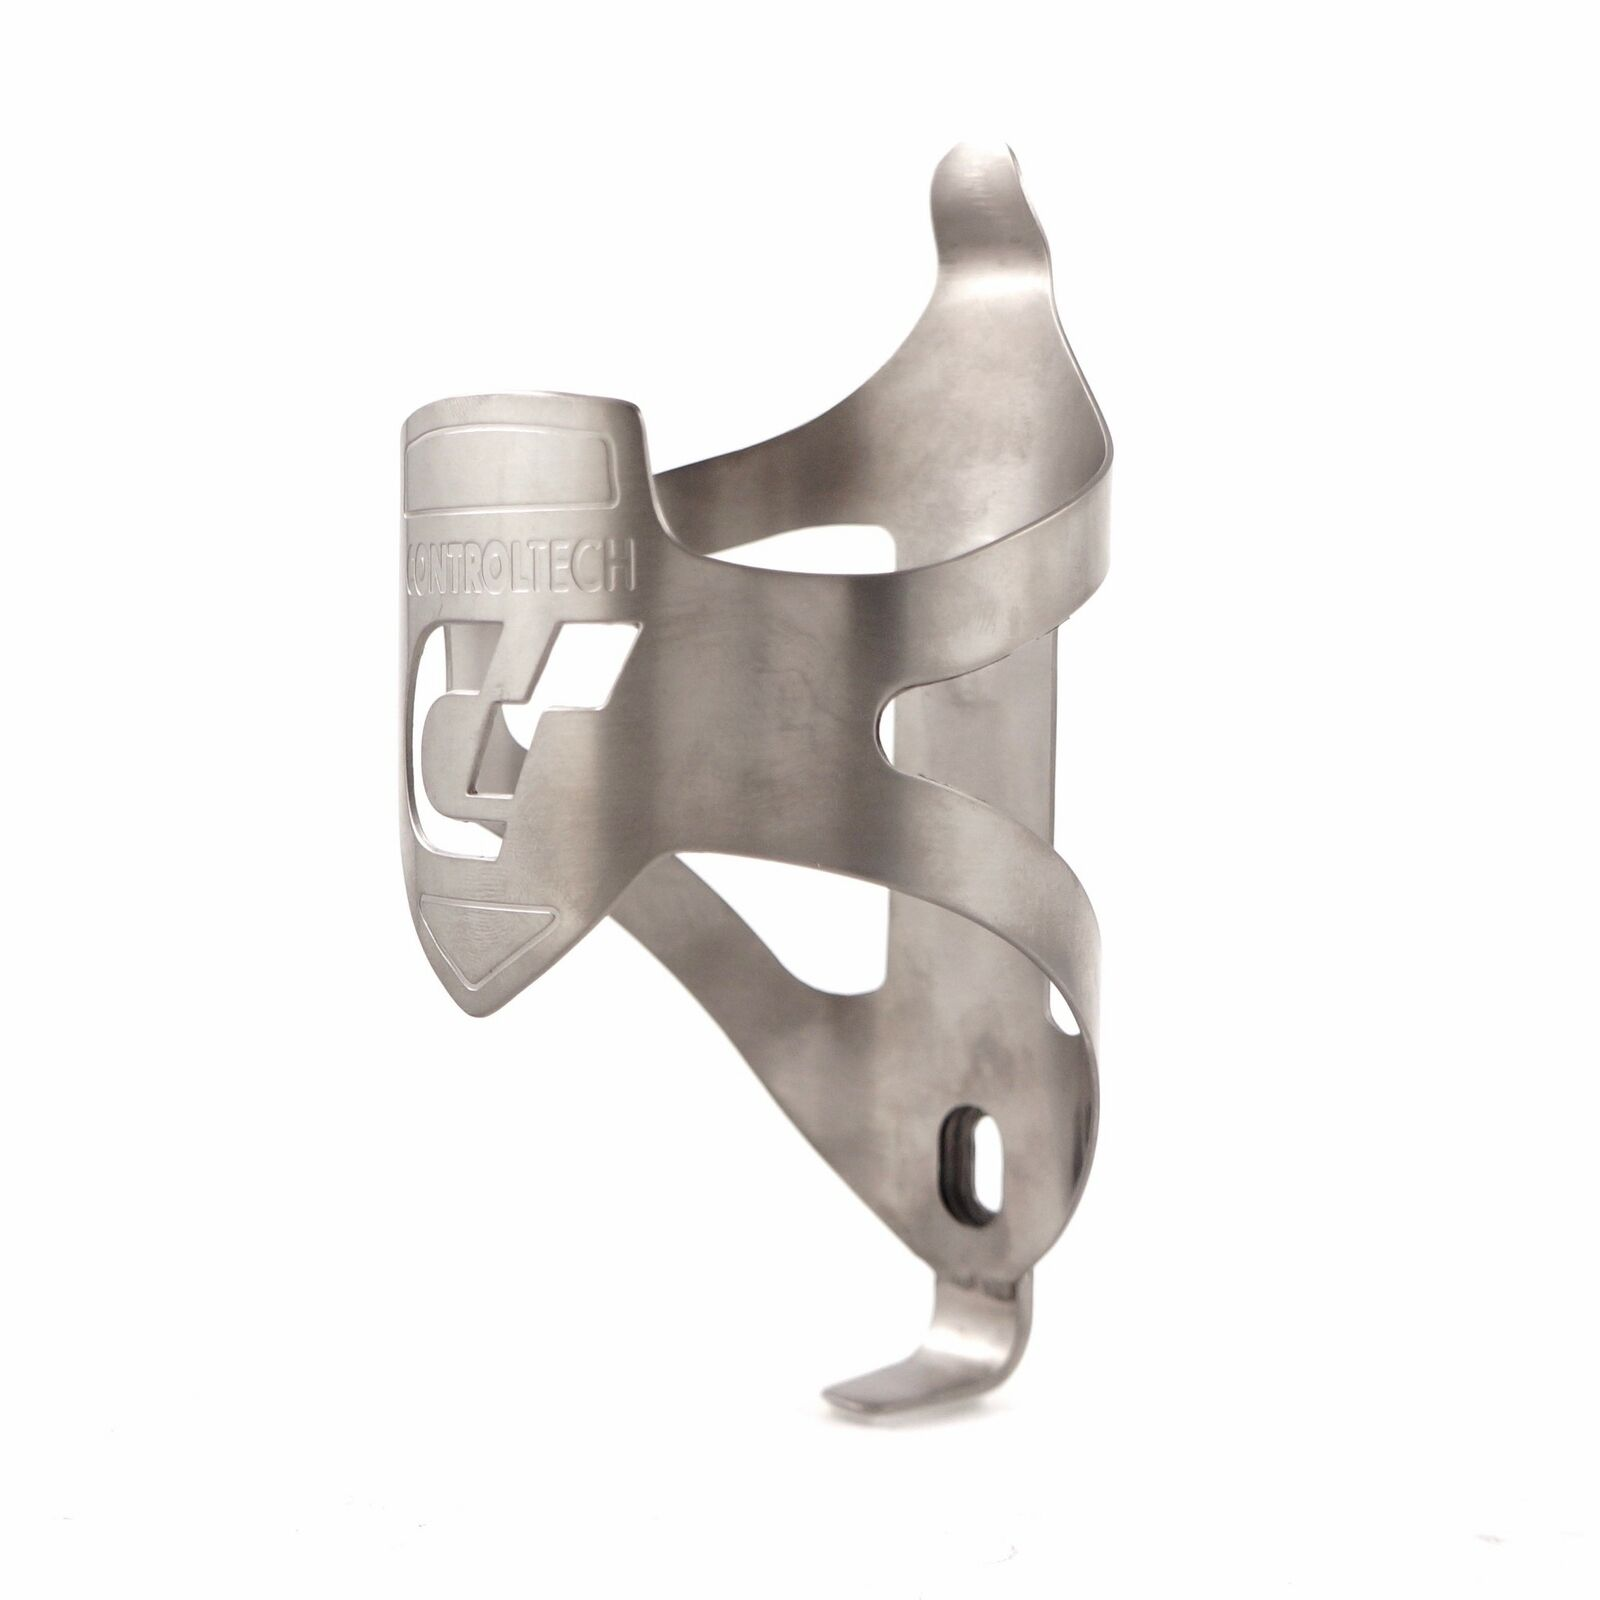 Controltech  BC-30 Timania Titanium stamped  Bottle Cage 47g  lightning delivery